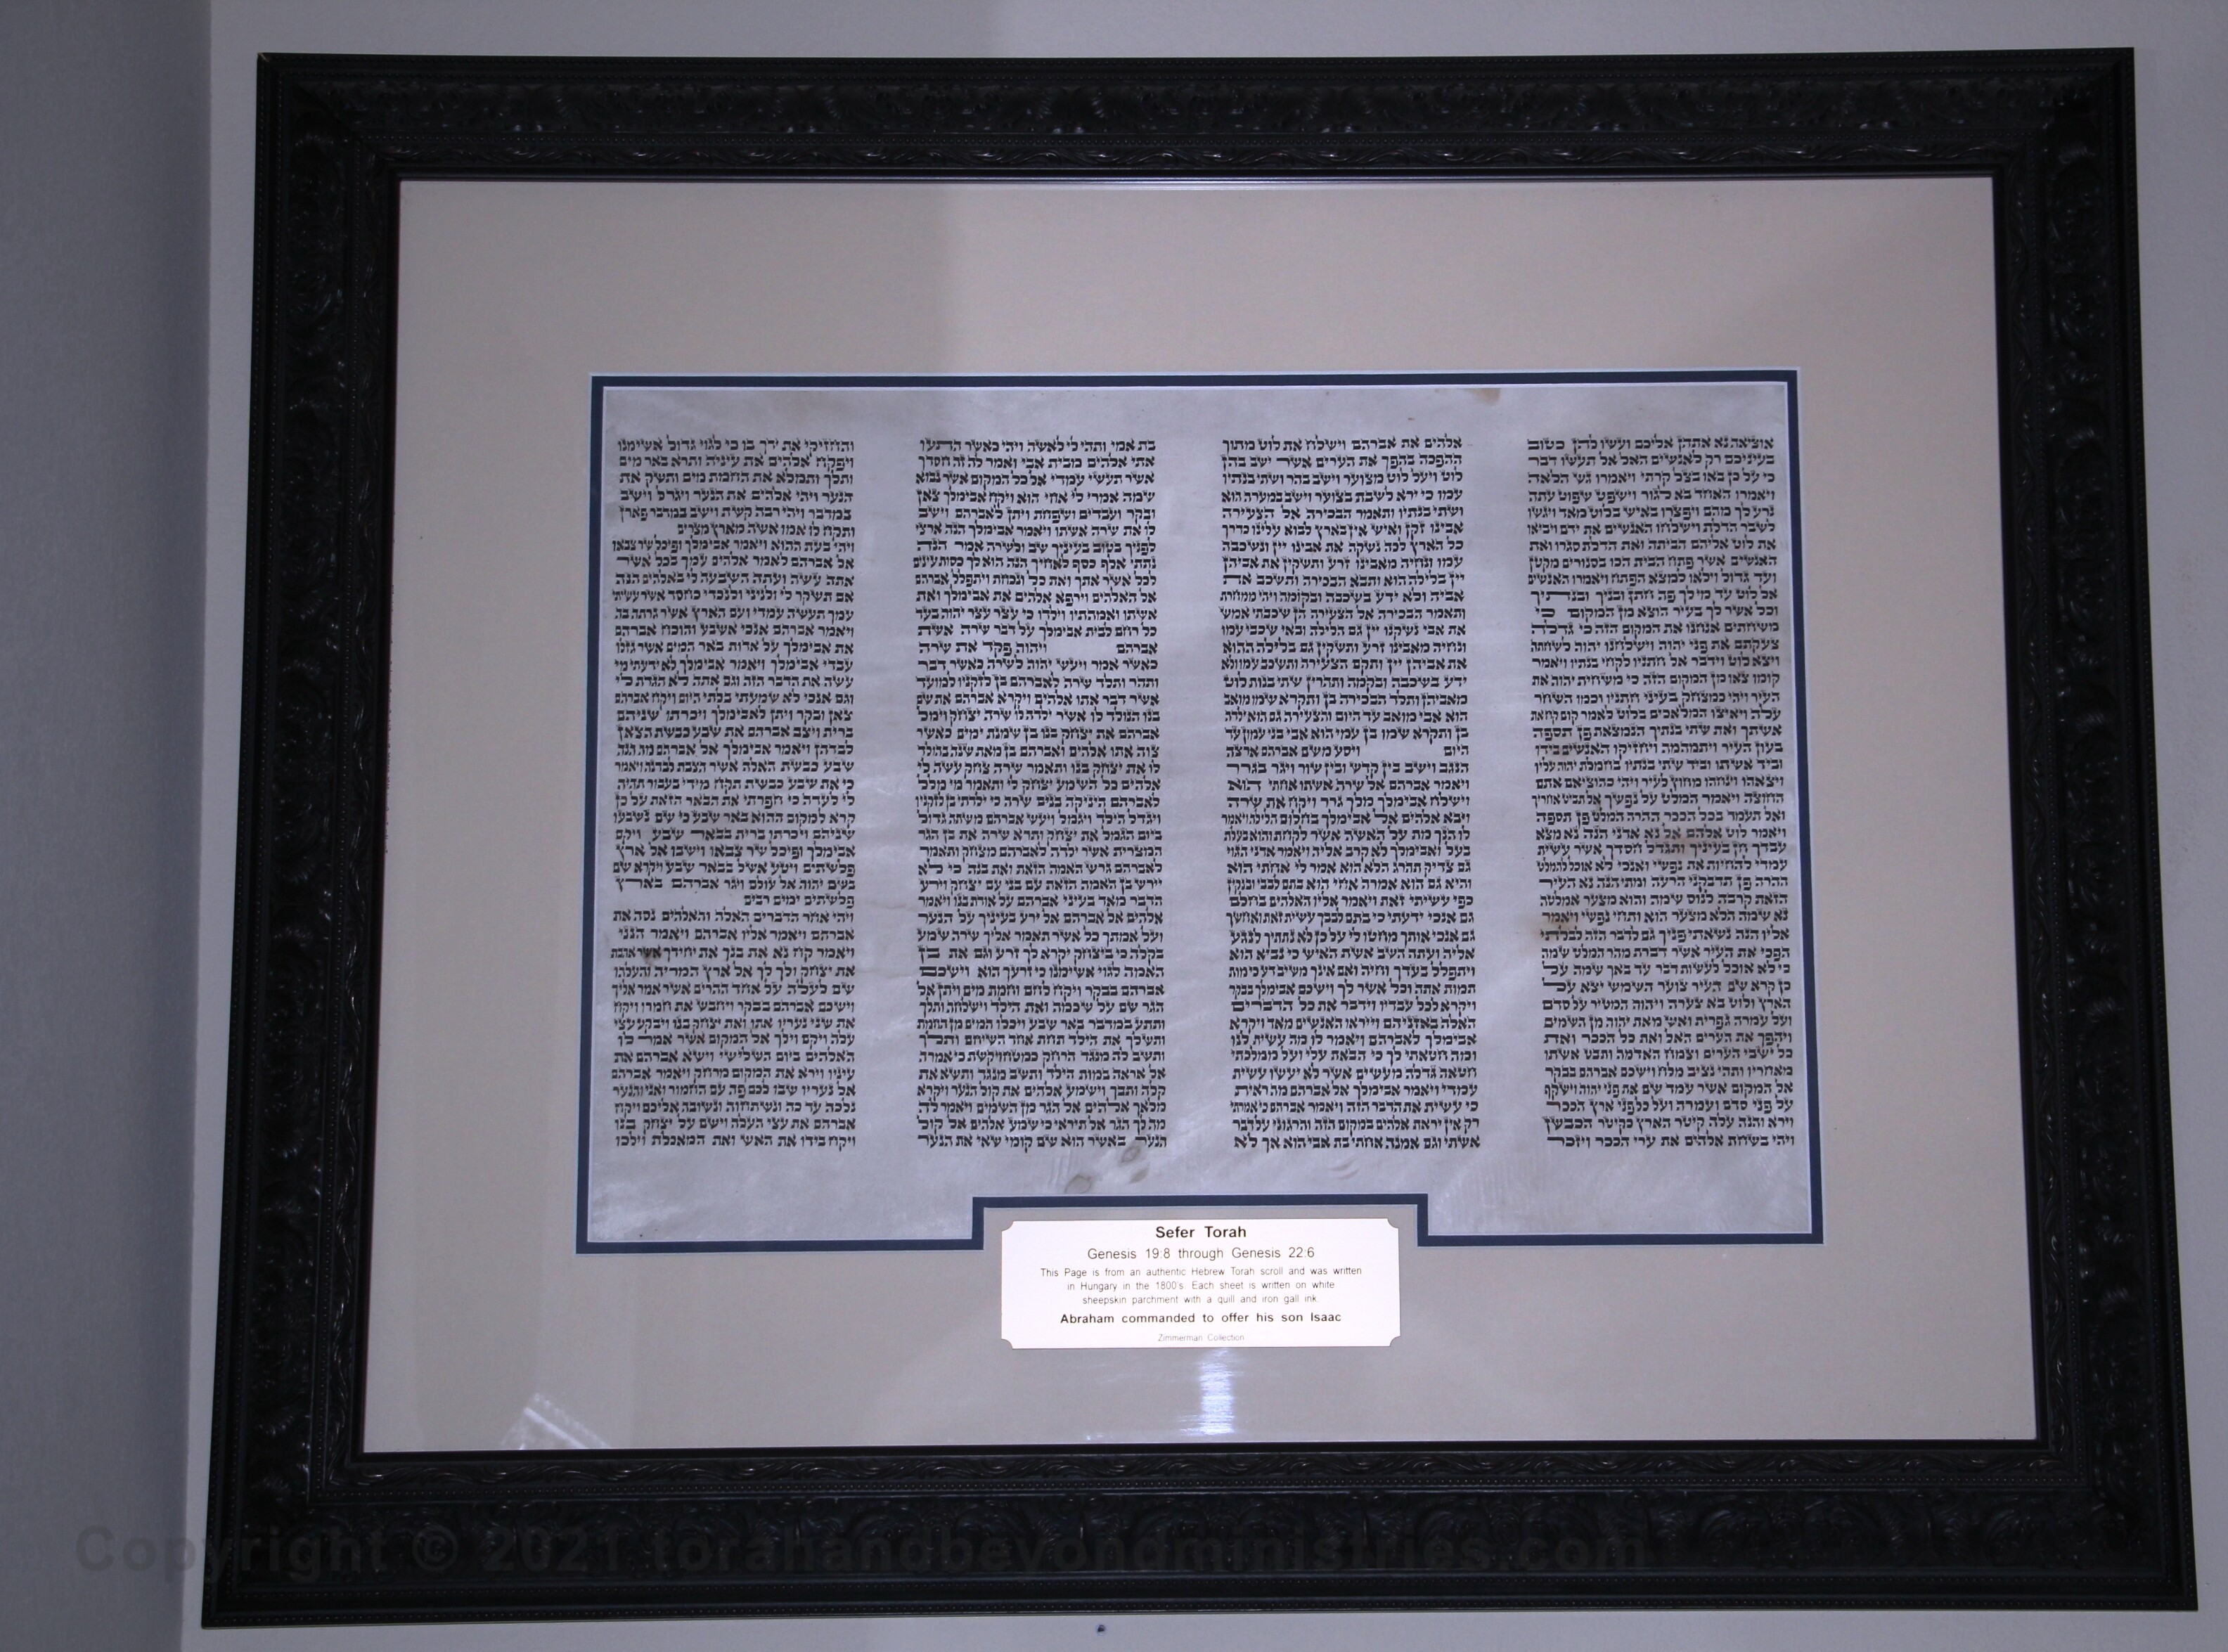 Framed Torah sheet Genesis 19:8 through Genesis 22:6  Abraham commanded to offer his son Isaac